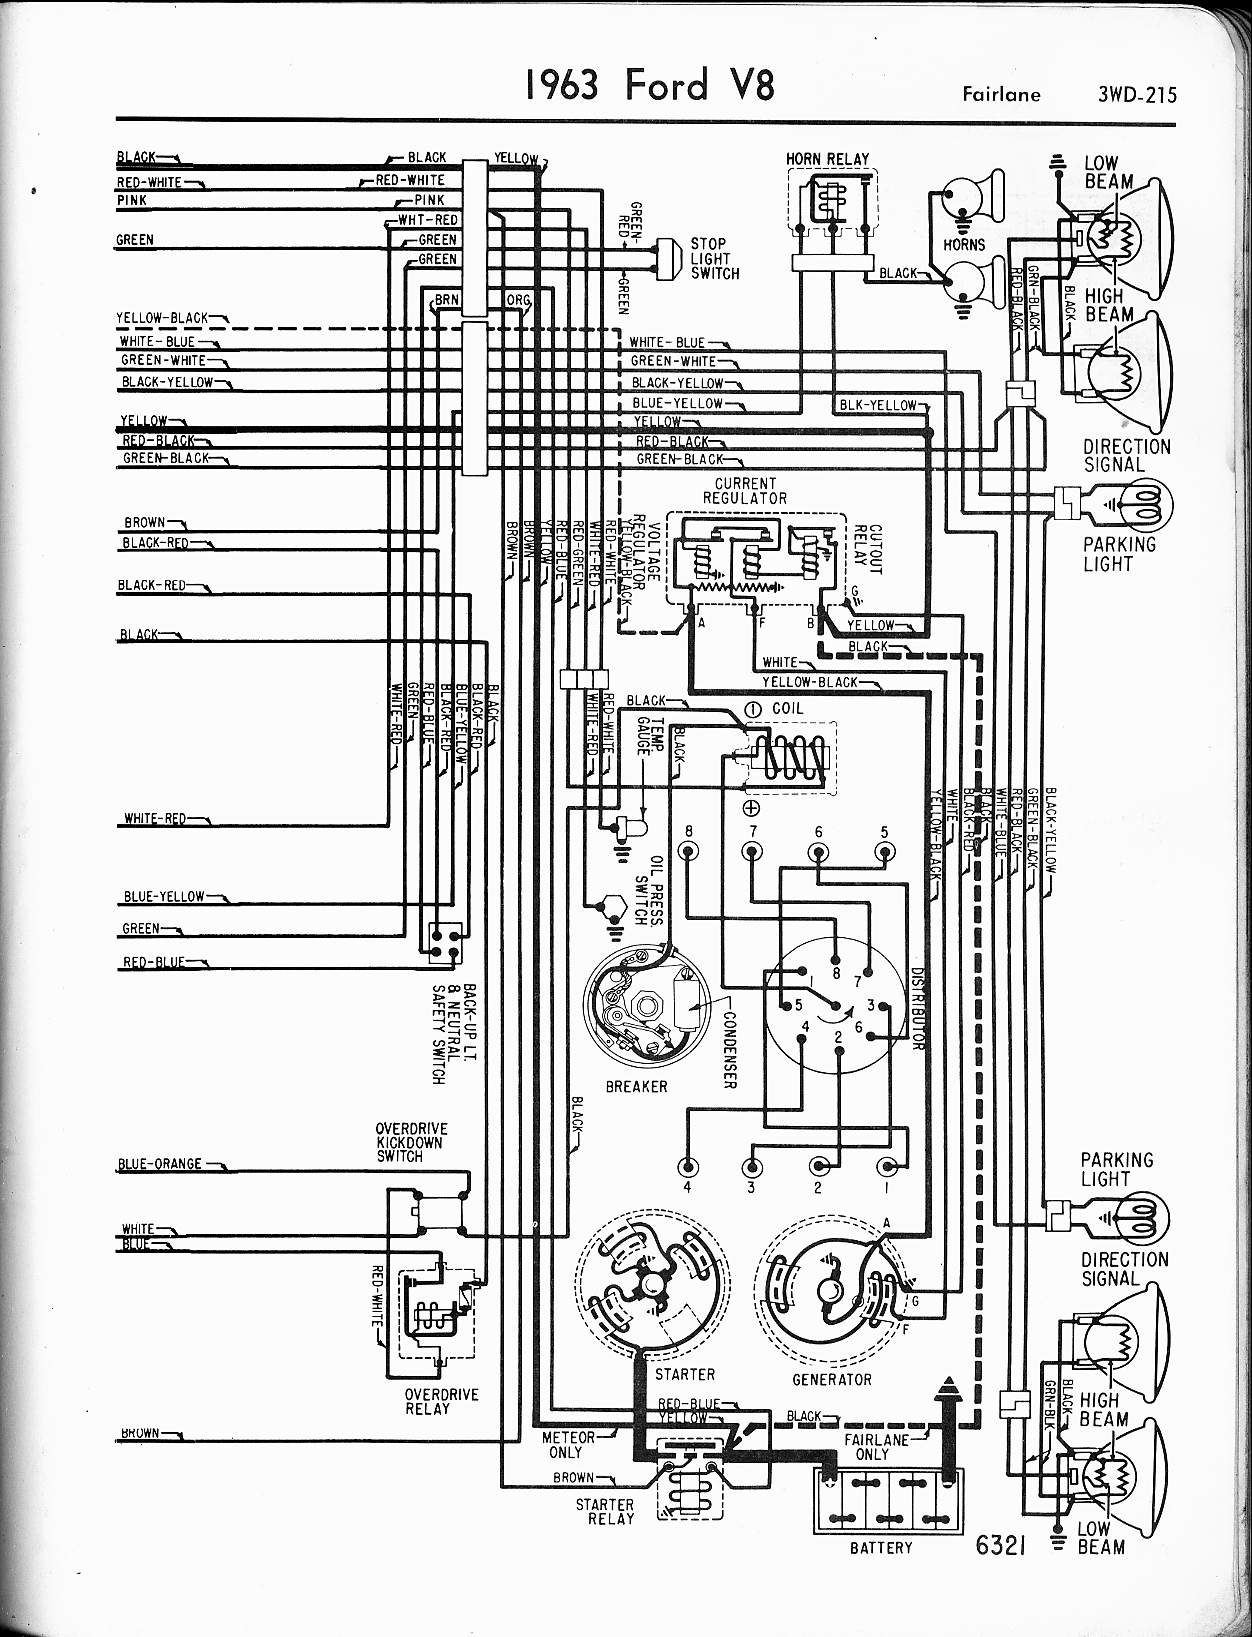 1963 Ford F350 Wiring Diagram F500 57 65 Diagrams1963 V8 Fairlane Right